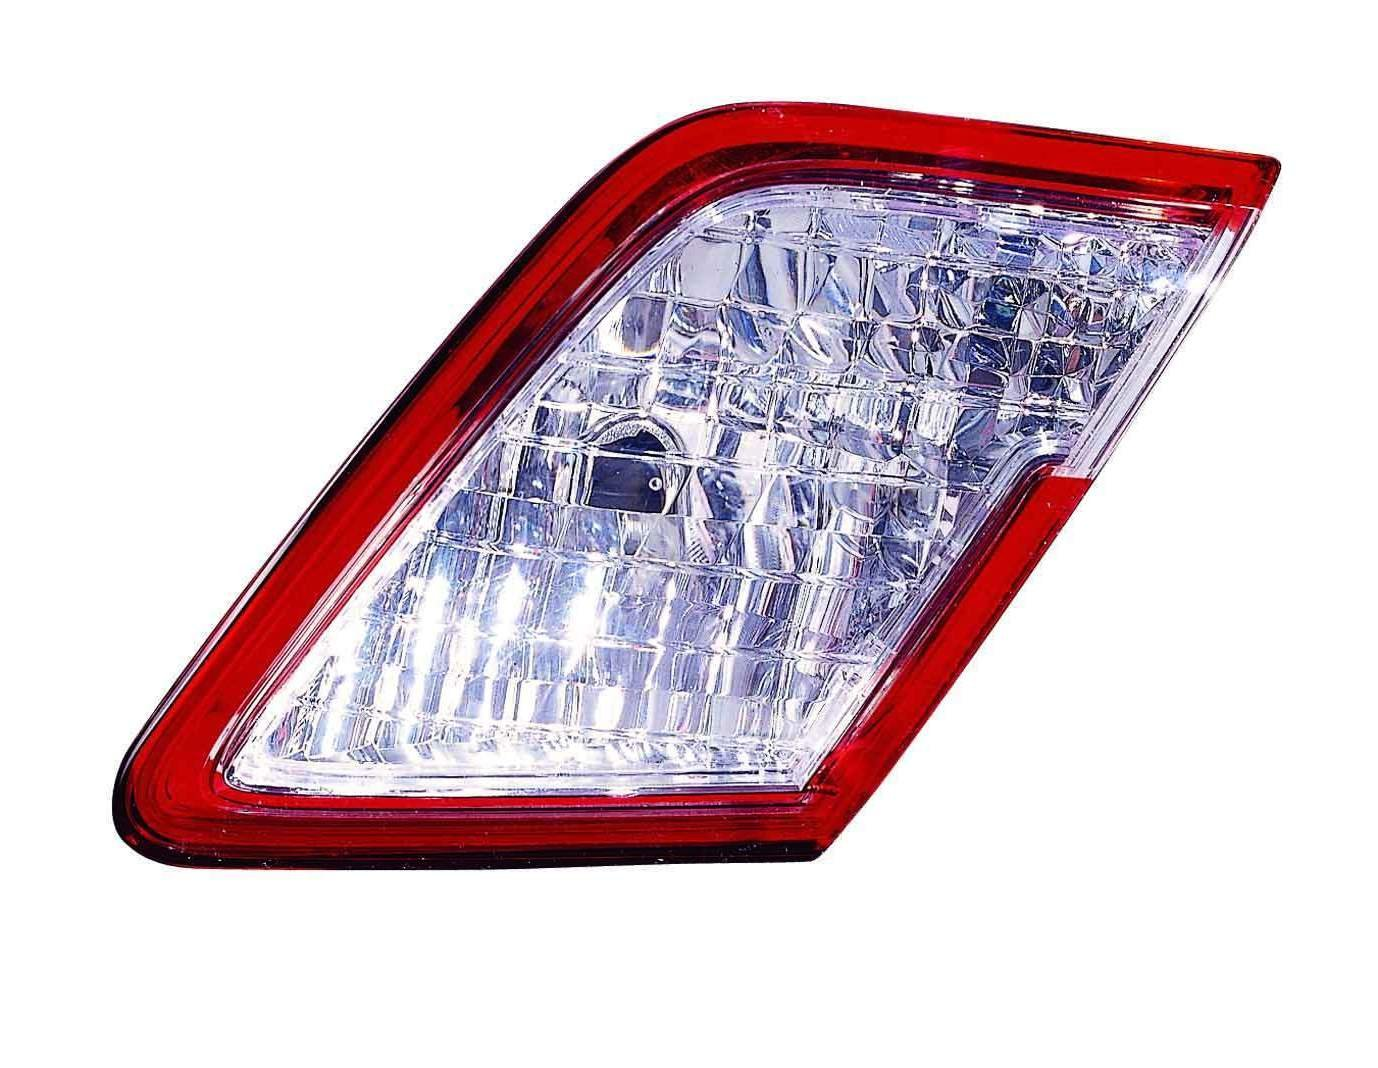 Depo 312-1313R-US Toyota Camry Passenger Side Replacement Backup Light Unit without Bulb 02-00-312-1313R-US